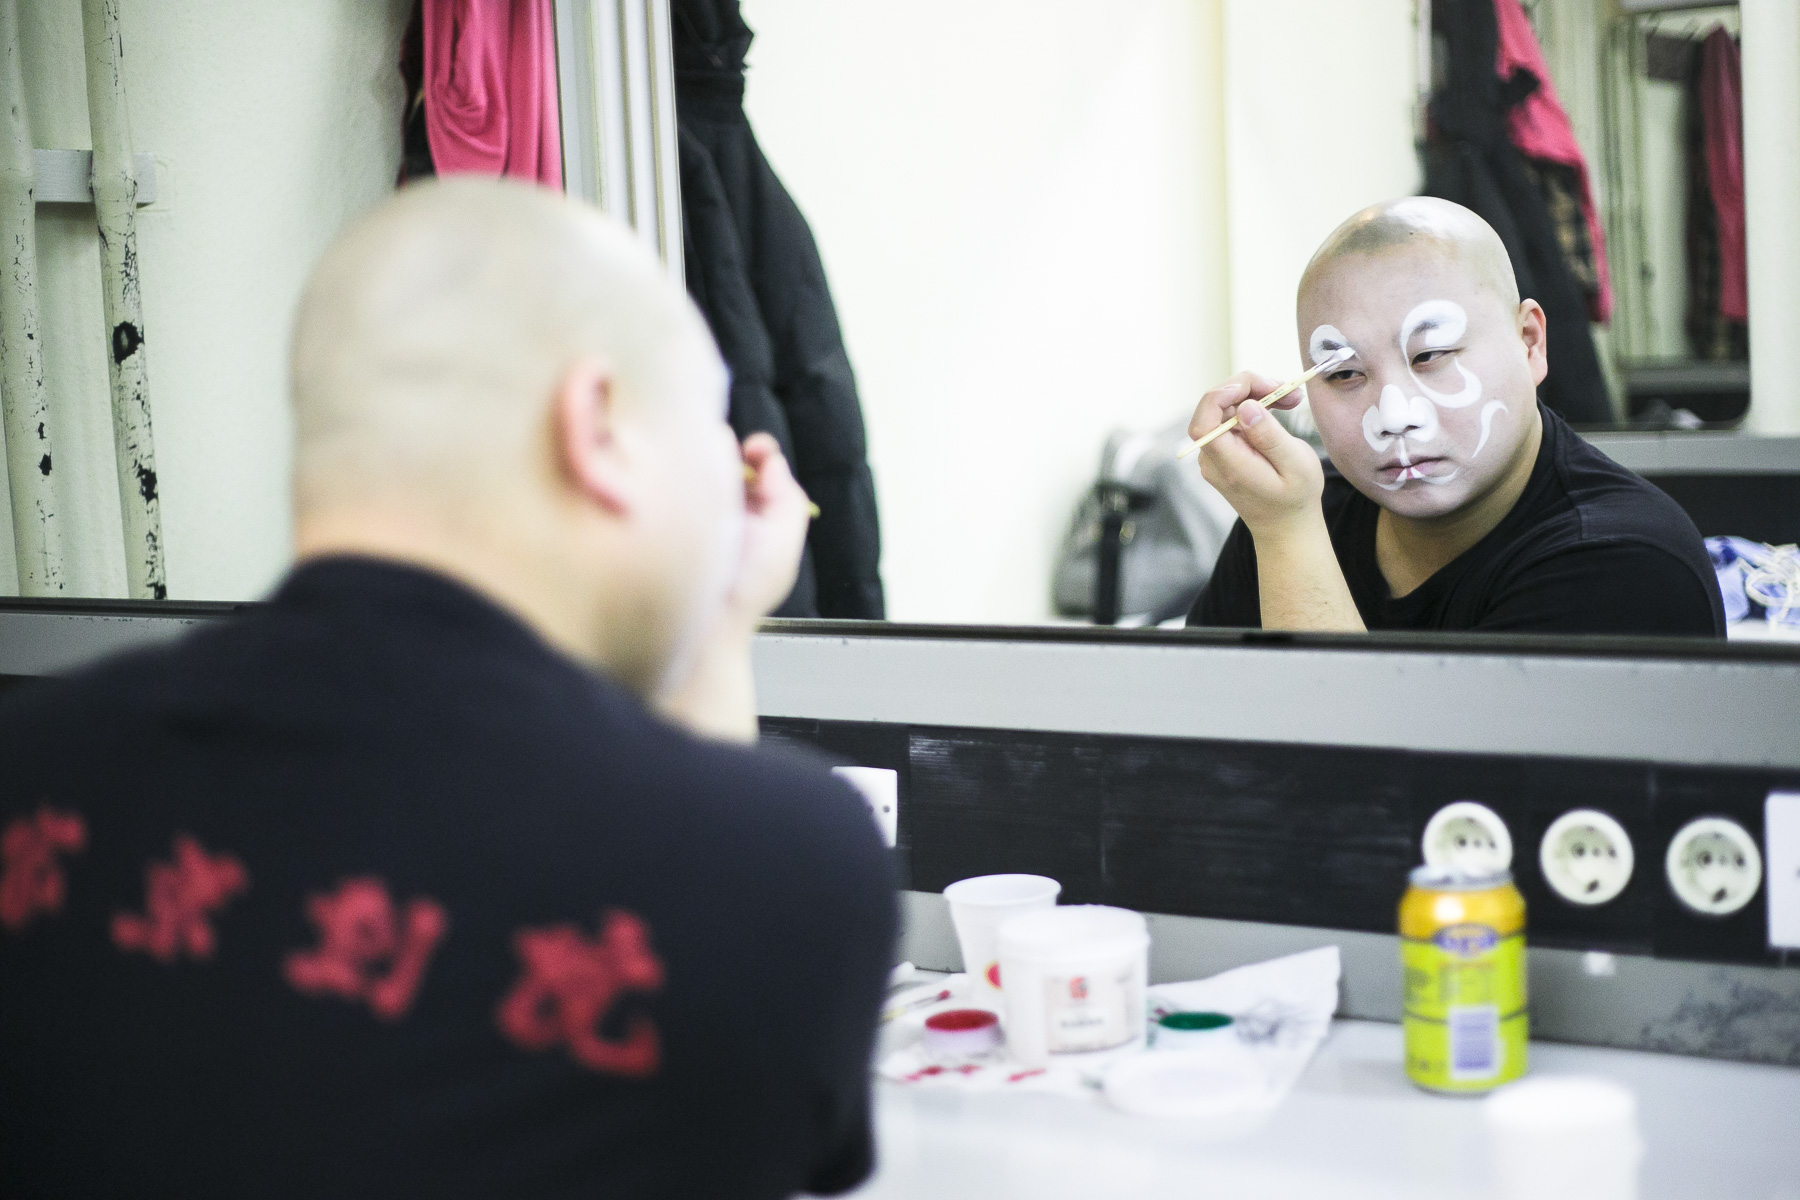 Shi Yan puts on makeup before the China National Peking Opera Company performance of the Monkey King in Cankarjev dom Culture and Congress Center in Ljubljana, Slovenia, Dec. 31, 2015.